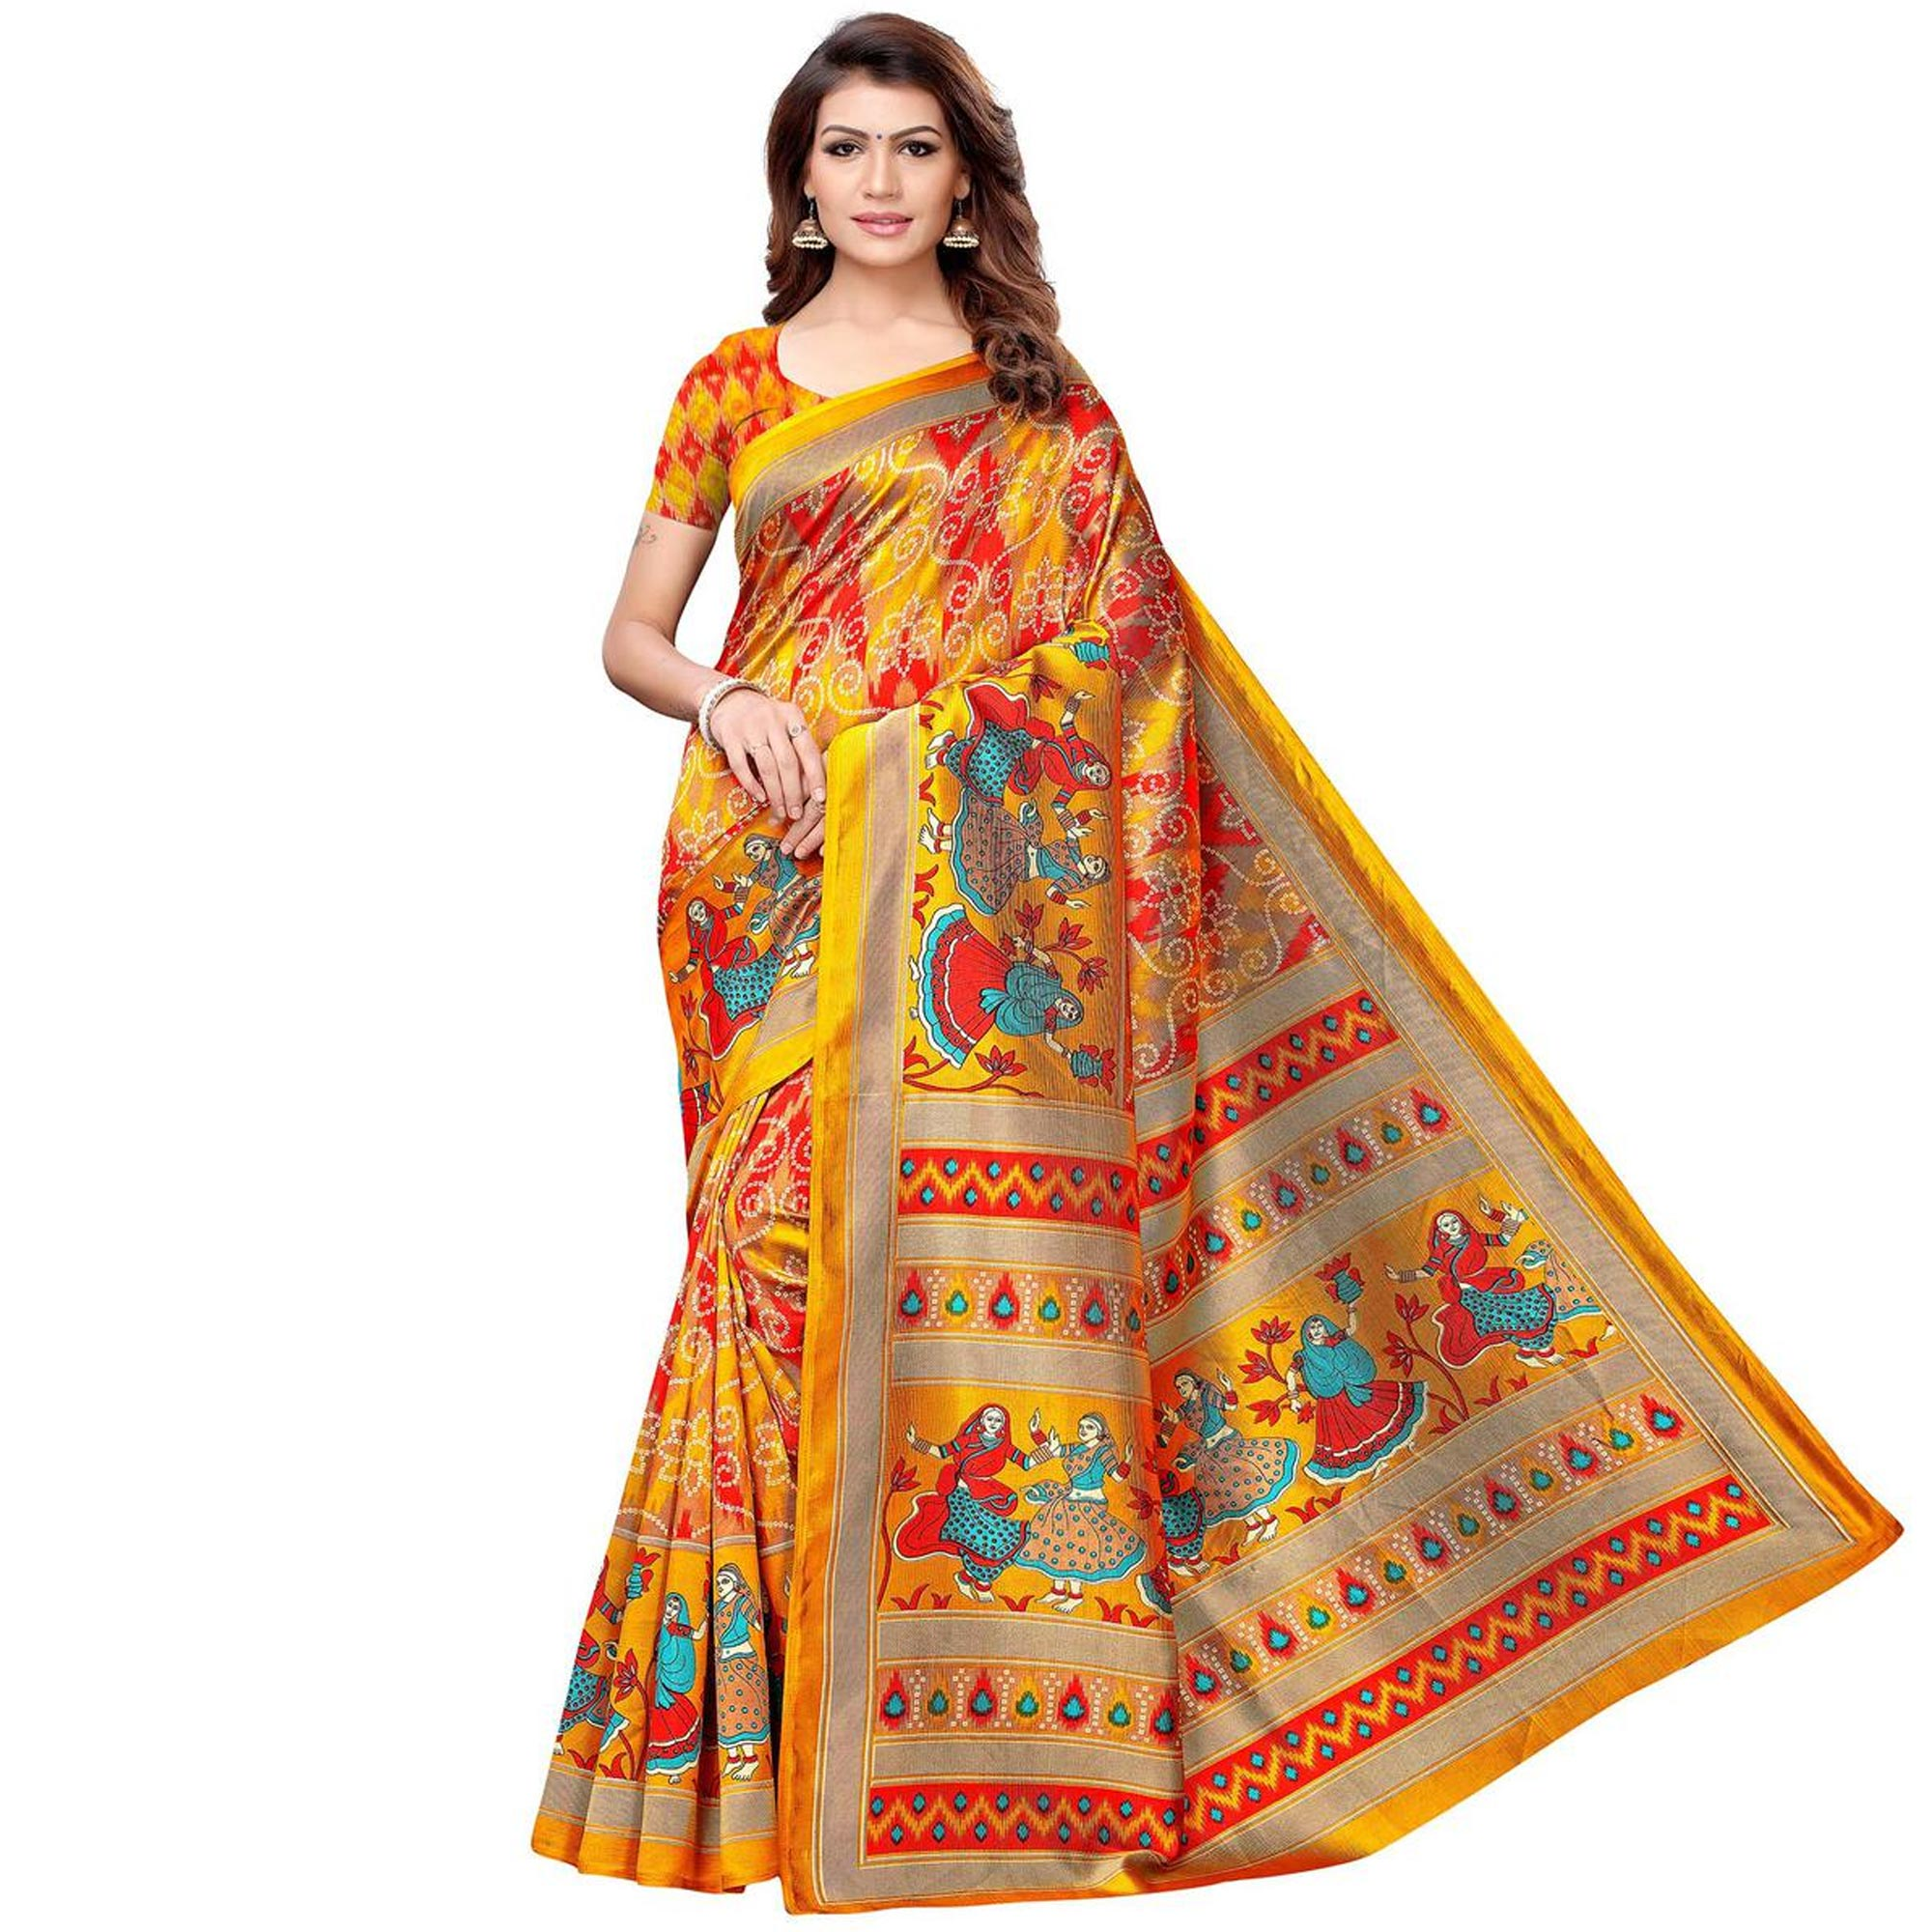 Gorgeous Festive Wear Sarees - Pack of 3